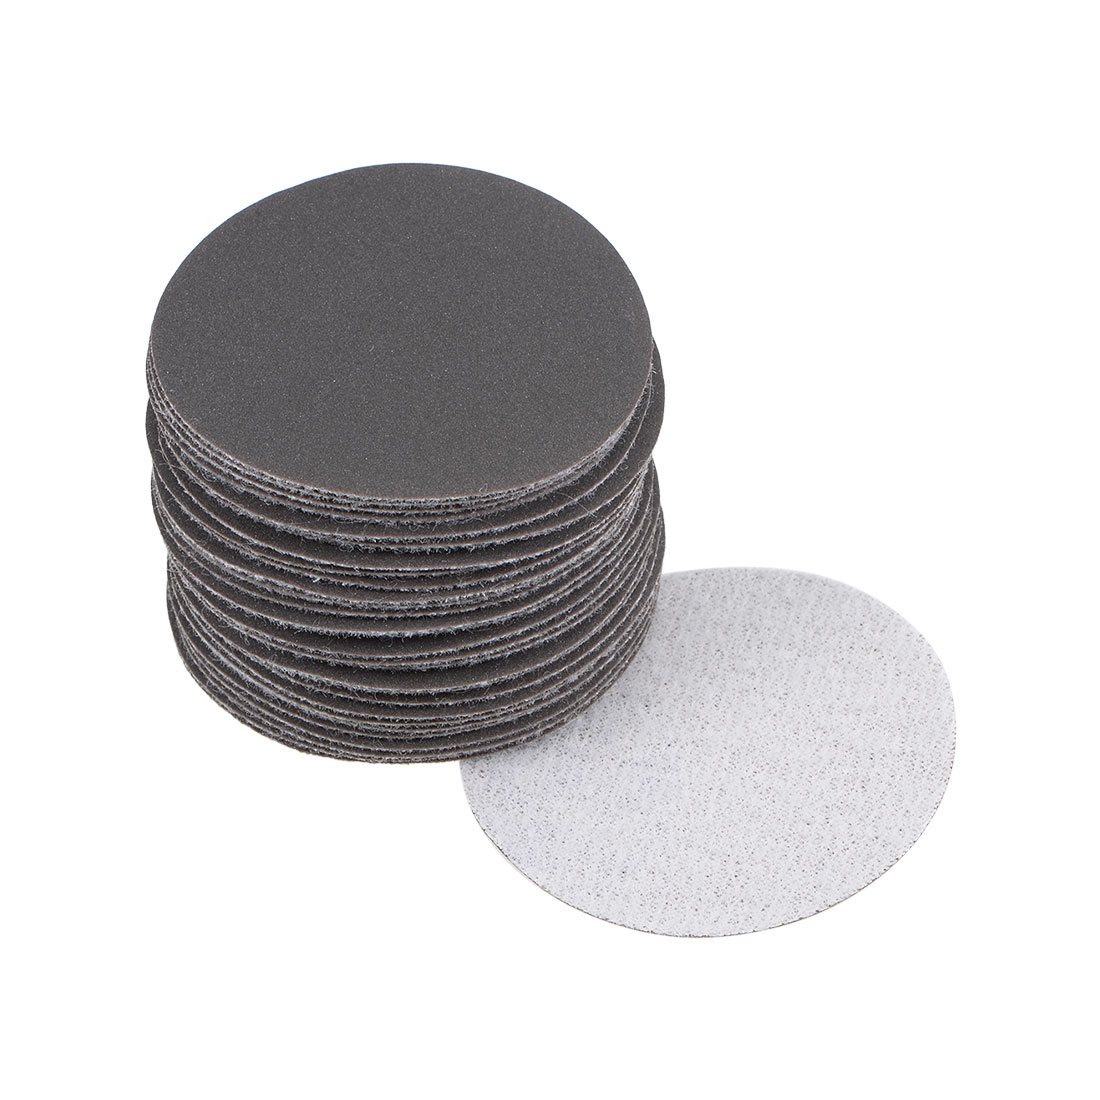 2 inch Wet Dry Discs 600 Grit Hook and Loop Sanding Disc Silicon Carbide 30pcs